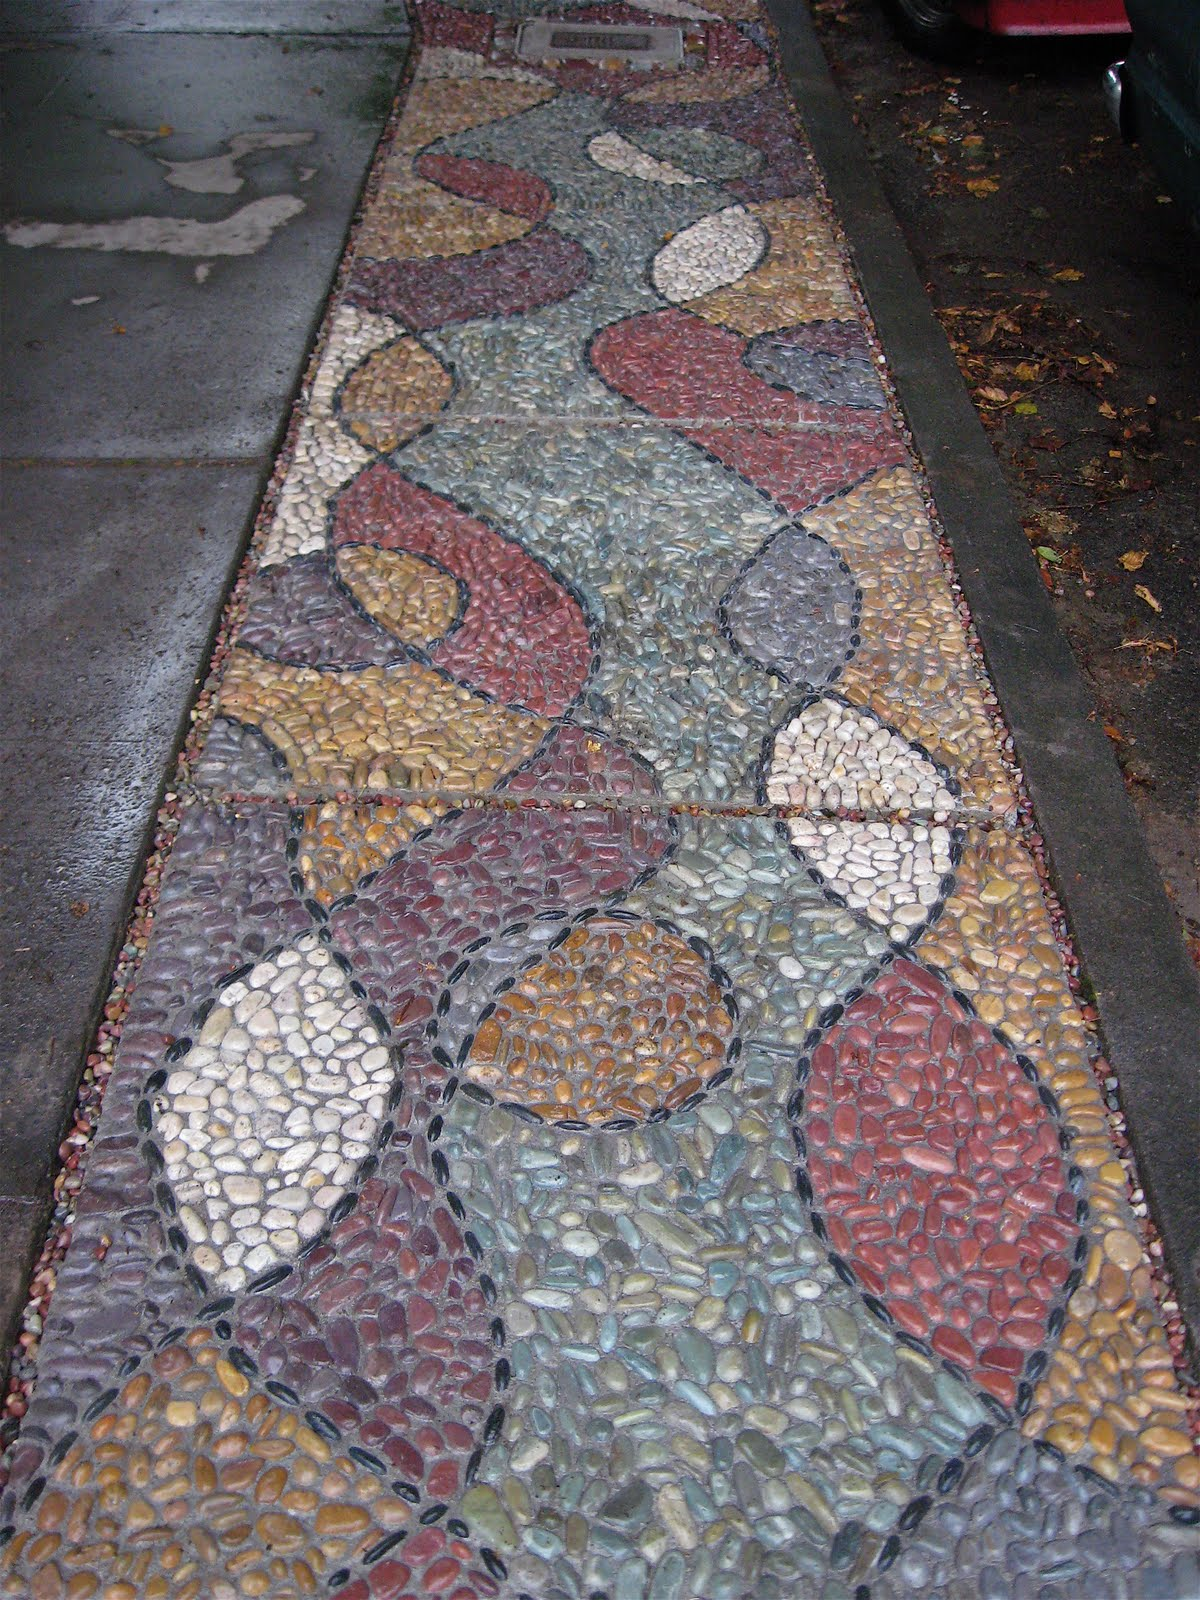 Jeffrey Bale's World of Gardens: Building a Pebble Mosaic ...